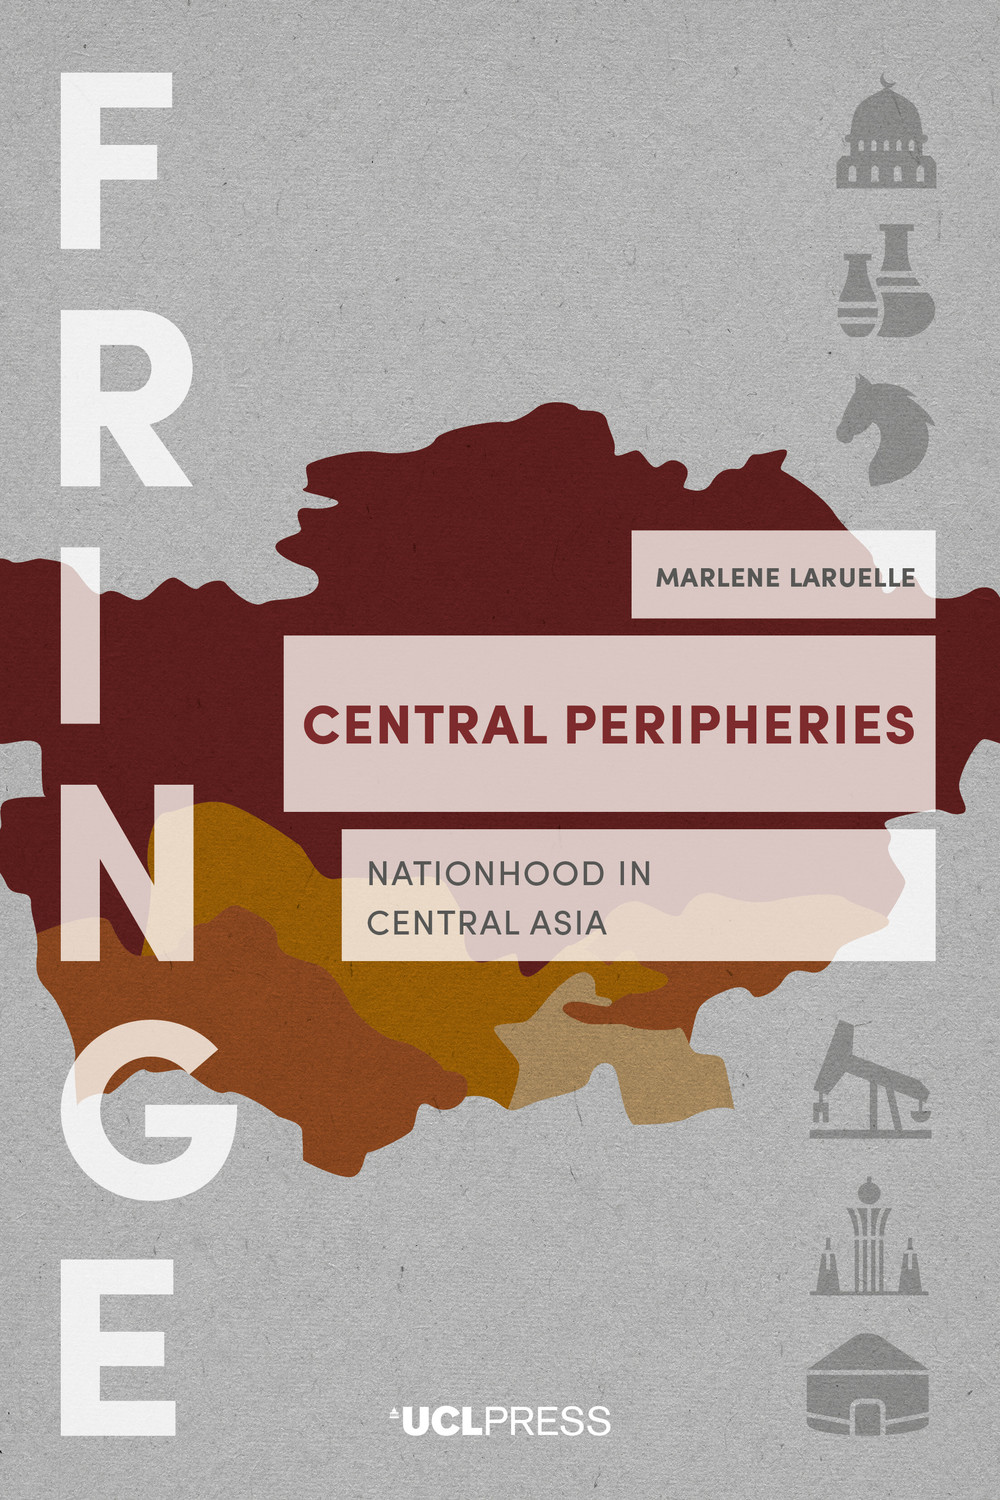 Central Peripheries